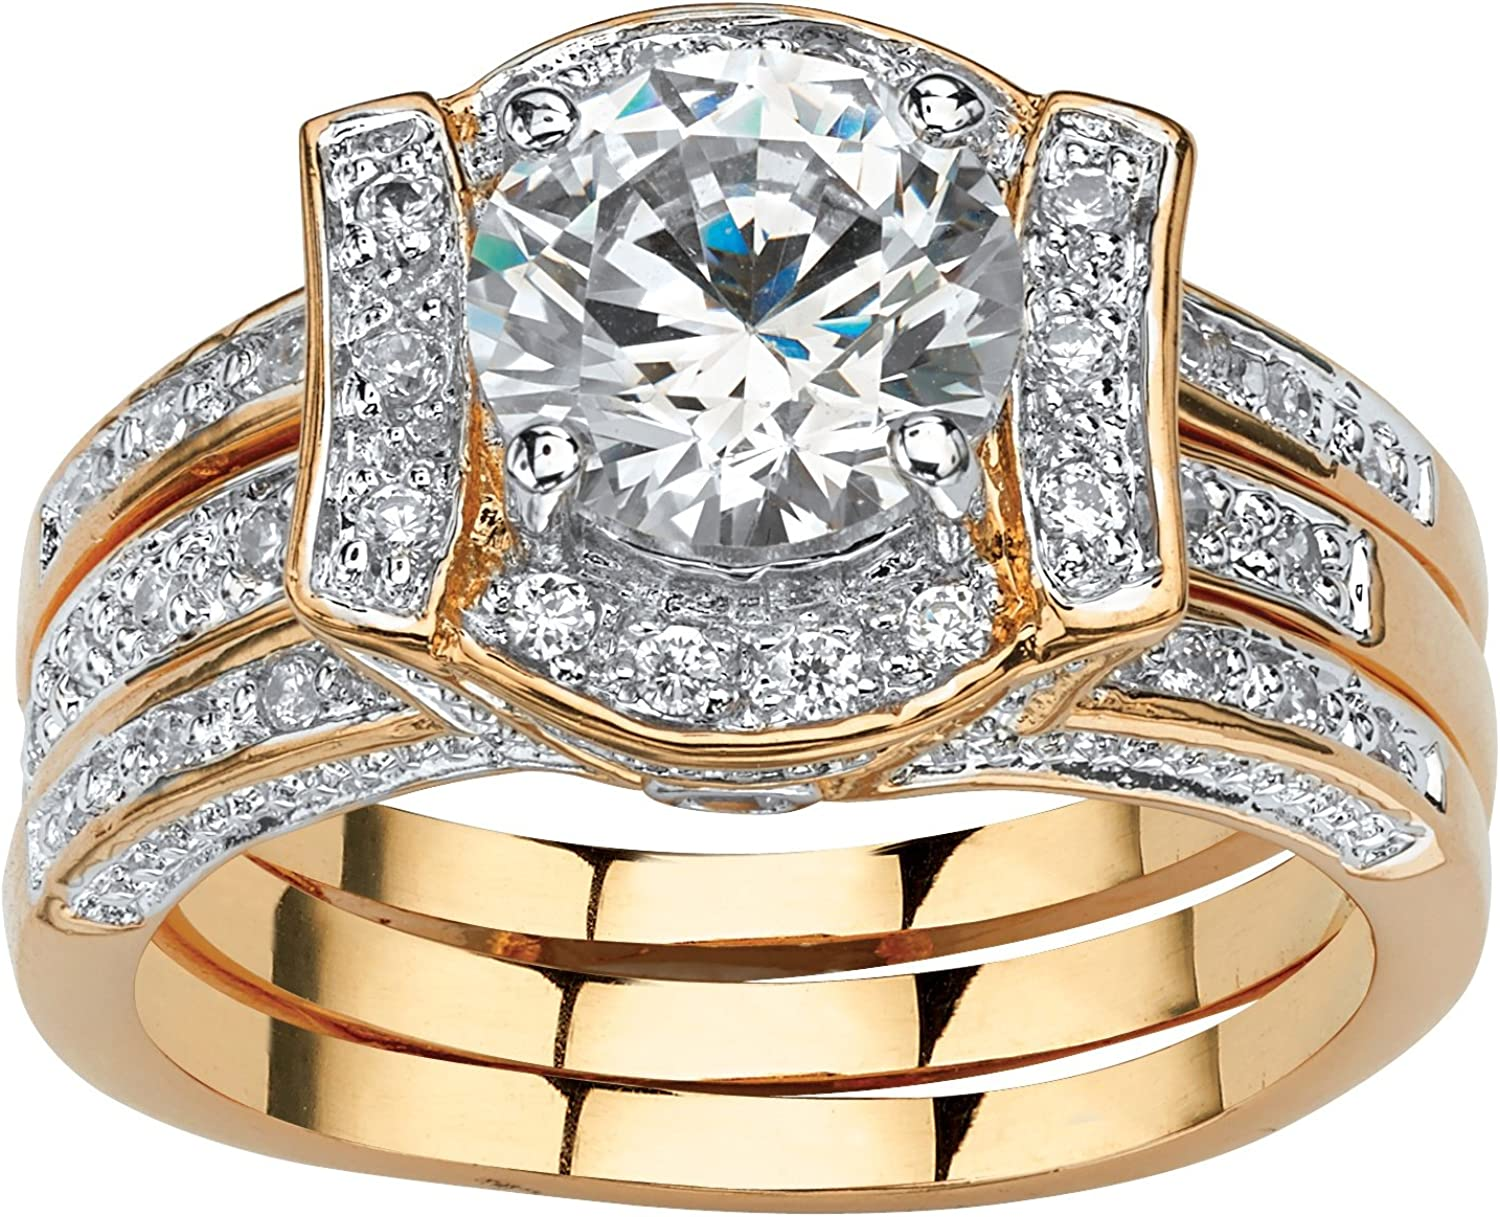 Palm Beach Jewelry Yellow Silver Platinum-Plated Gold-Plated Free Shipping Cheap Bargain Gift or Selling rankings